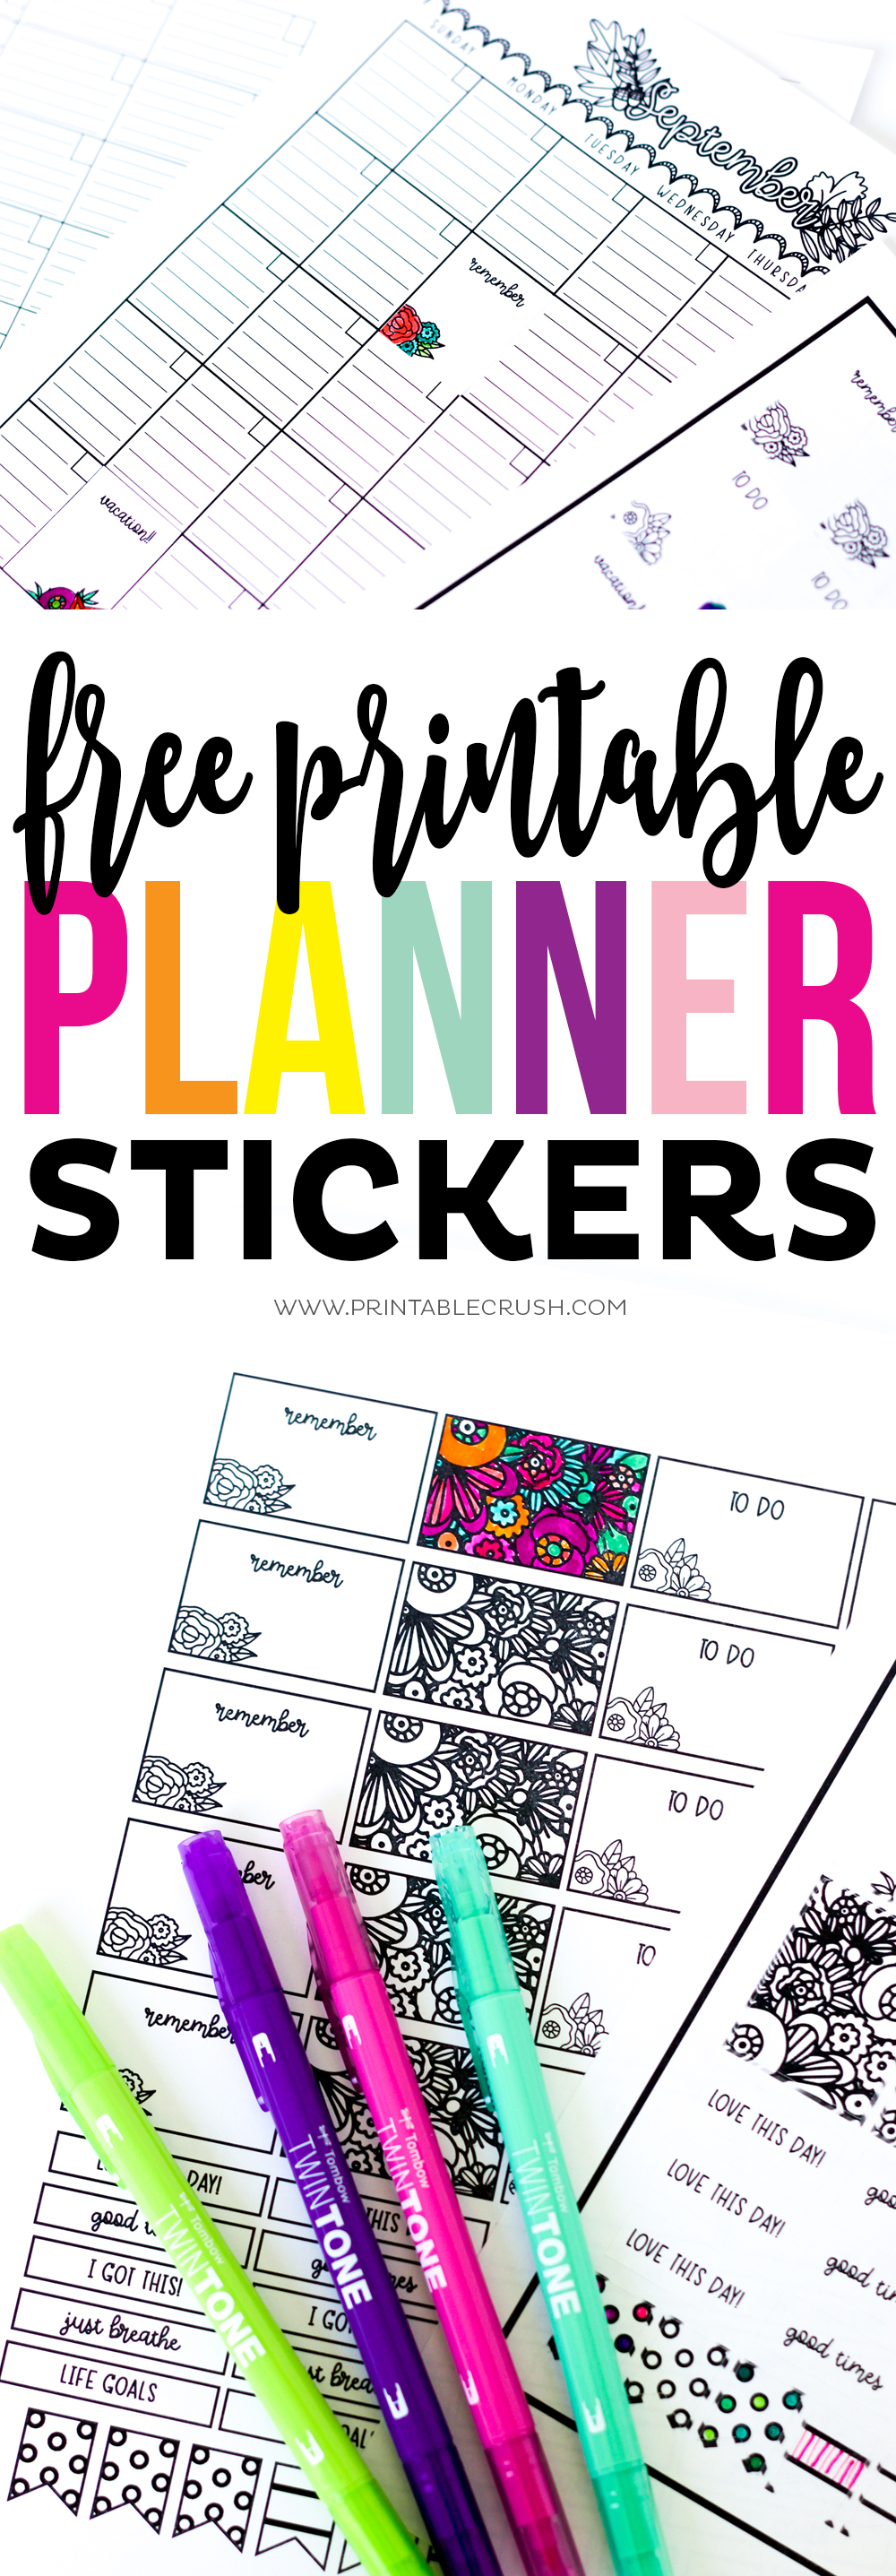 If you're new to Cricut Print and Cut, you'll need to know these tips! Plus, you can download some FREE Printable Planner Stickers!